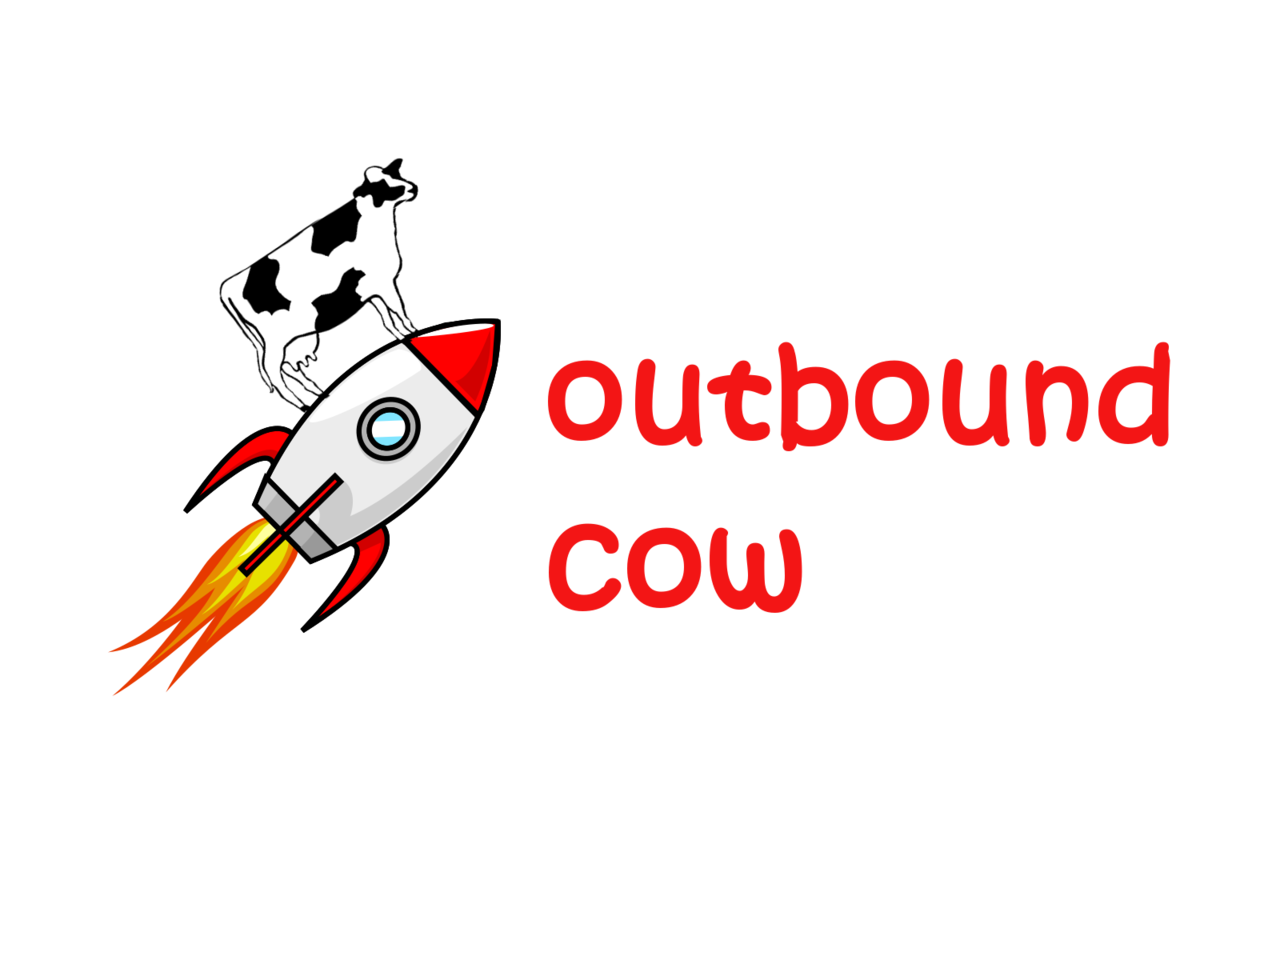 The OutBound Cow